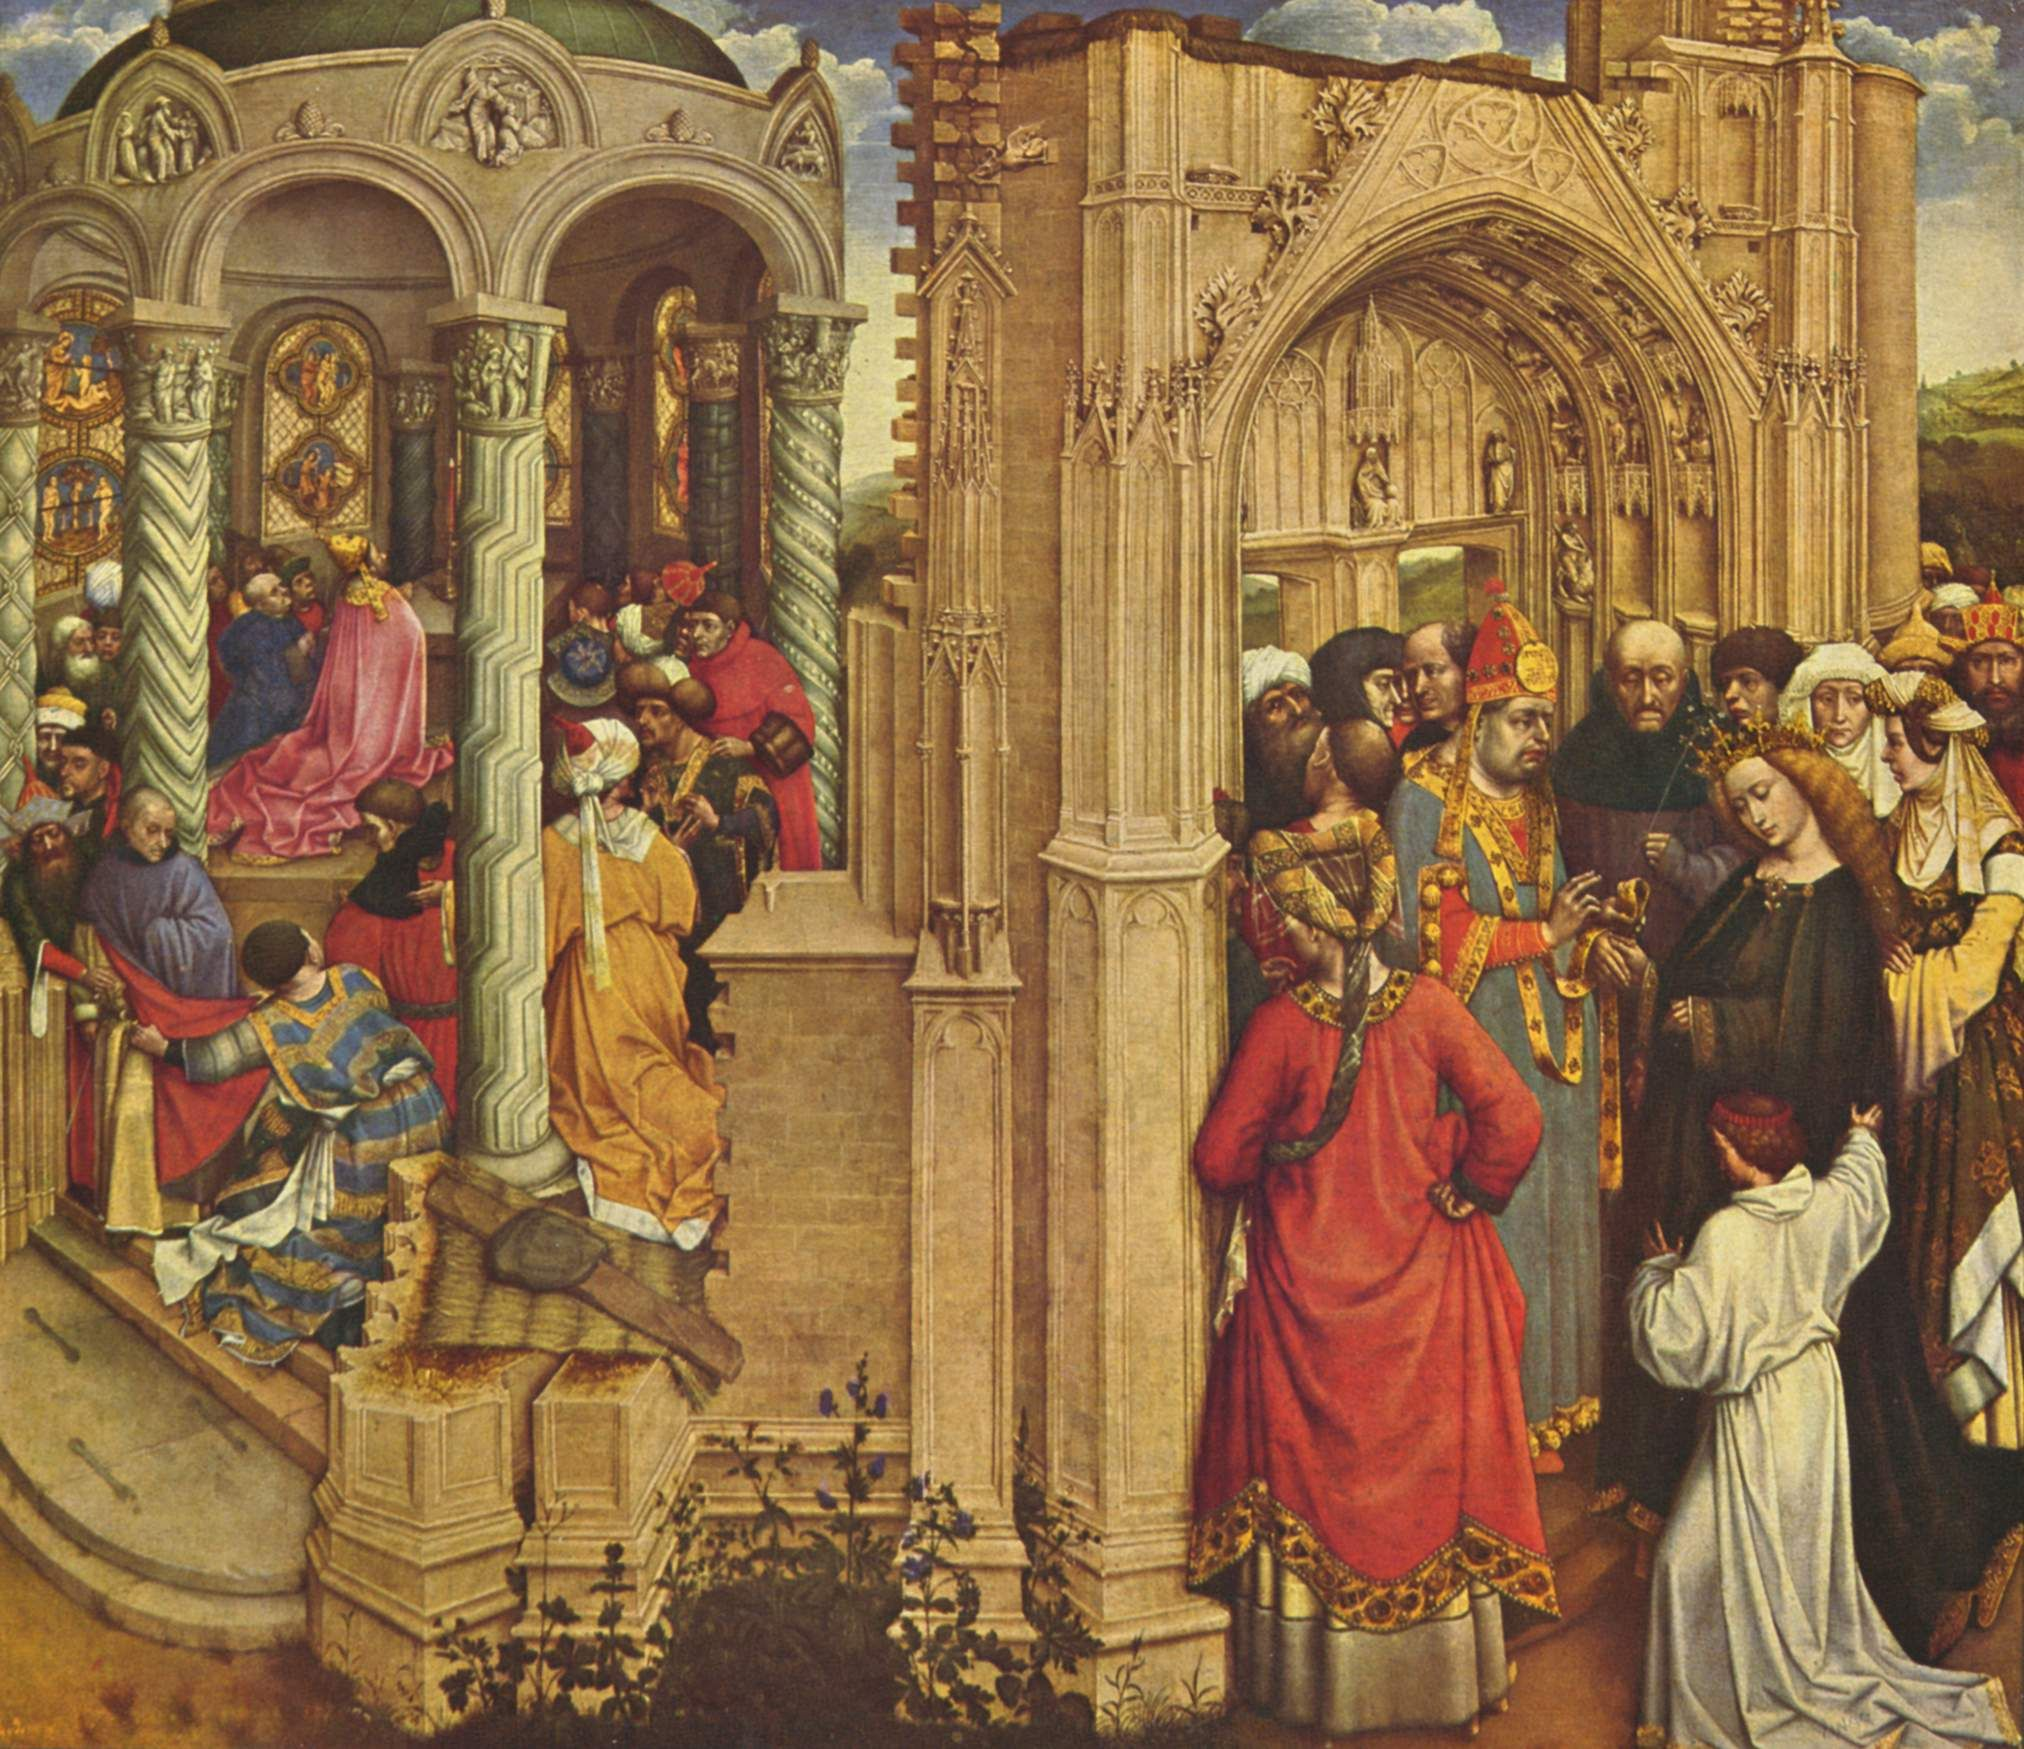 The Nuptials of the Virgin, 1420 - Robert Campin